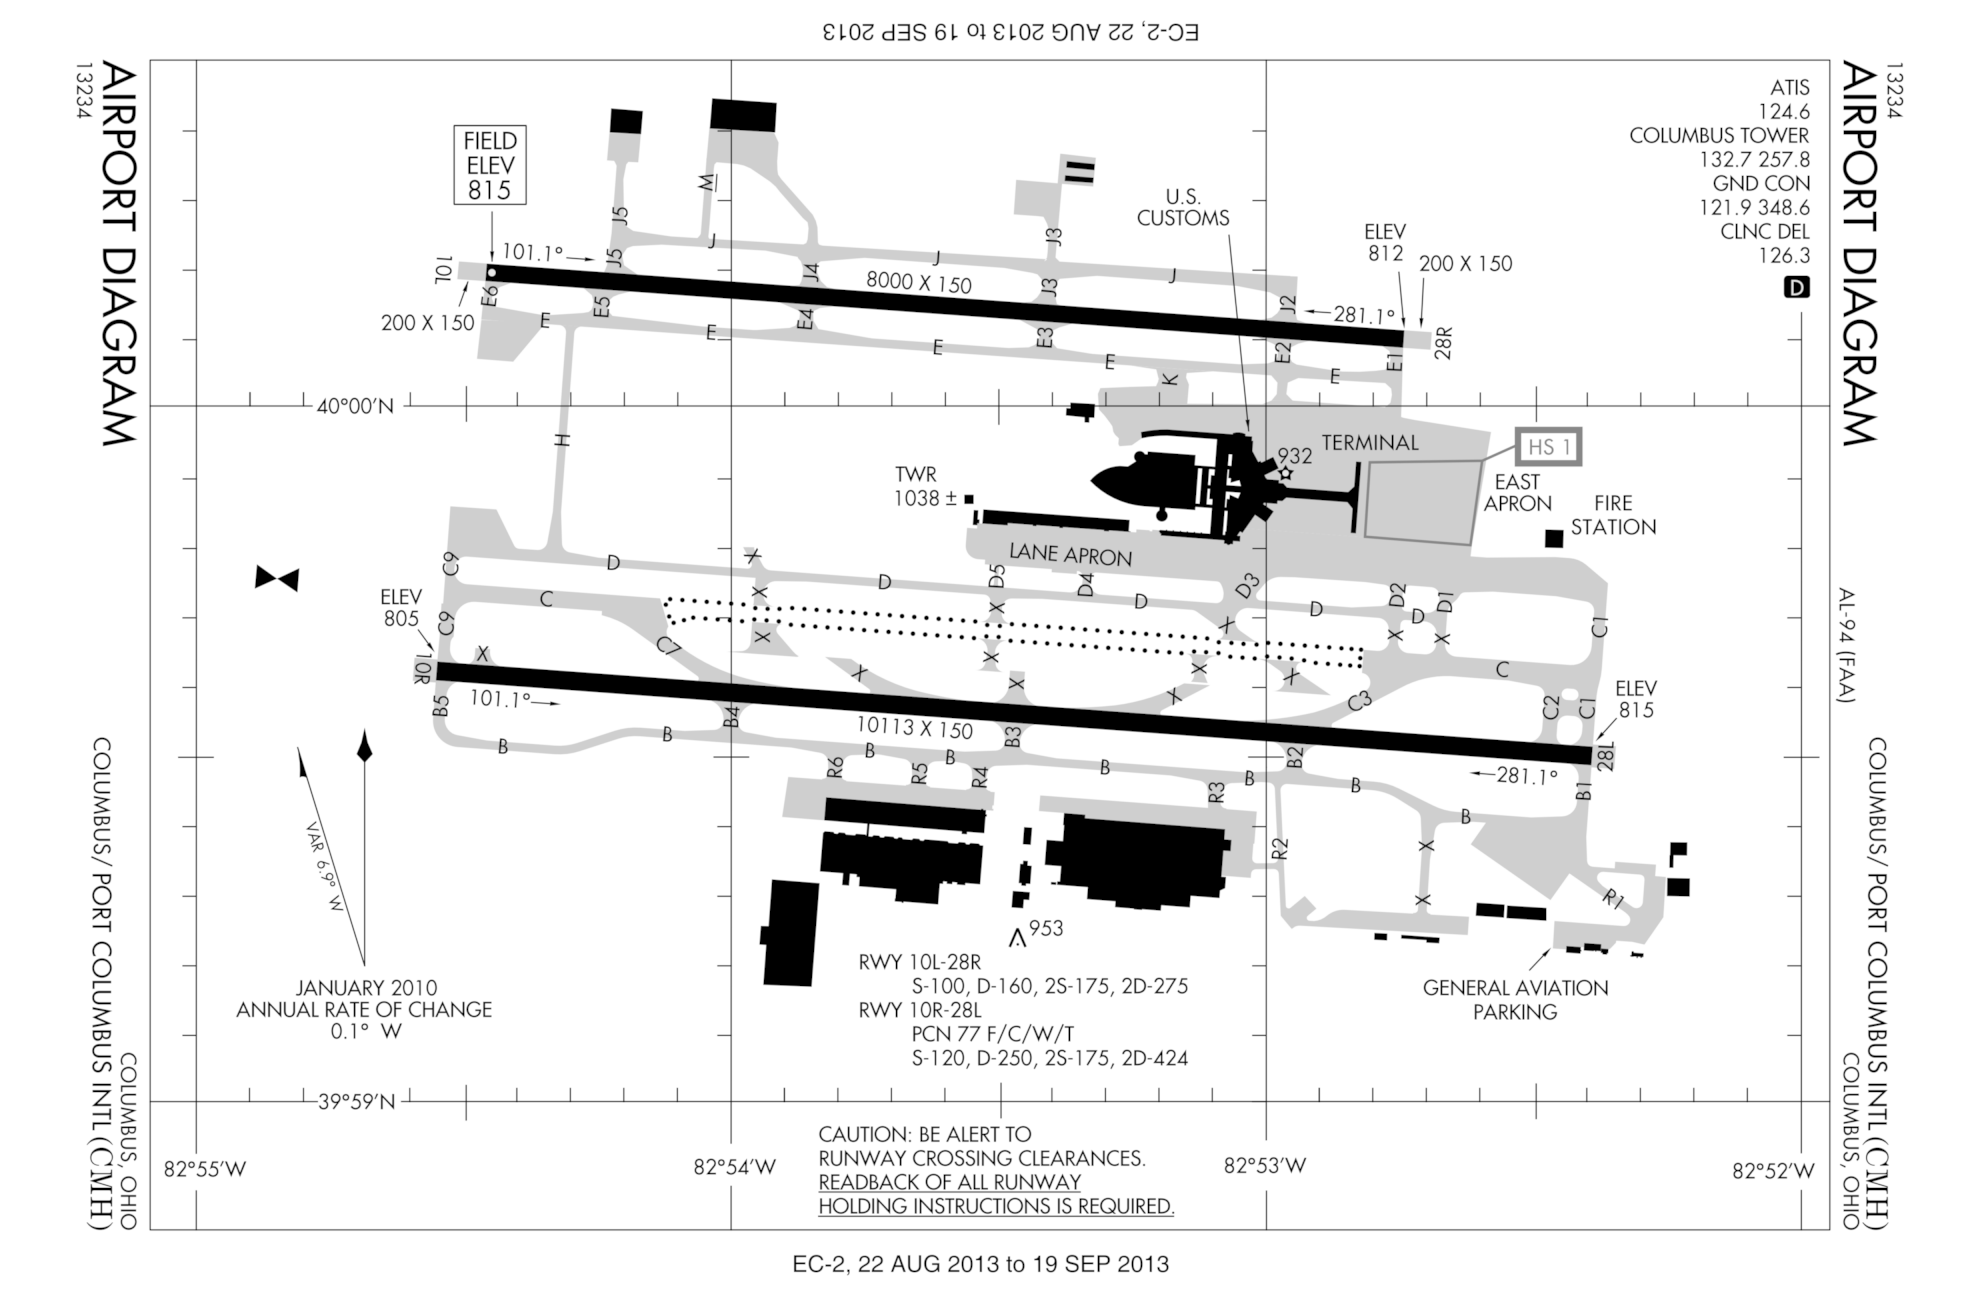 File Kcmh Airport Map